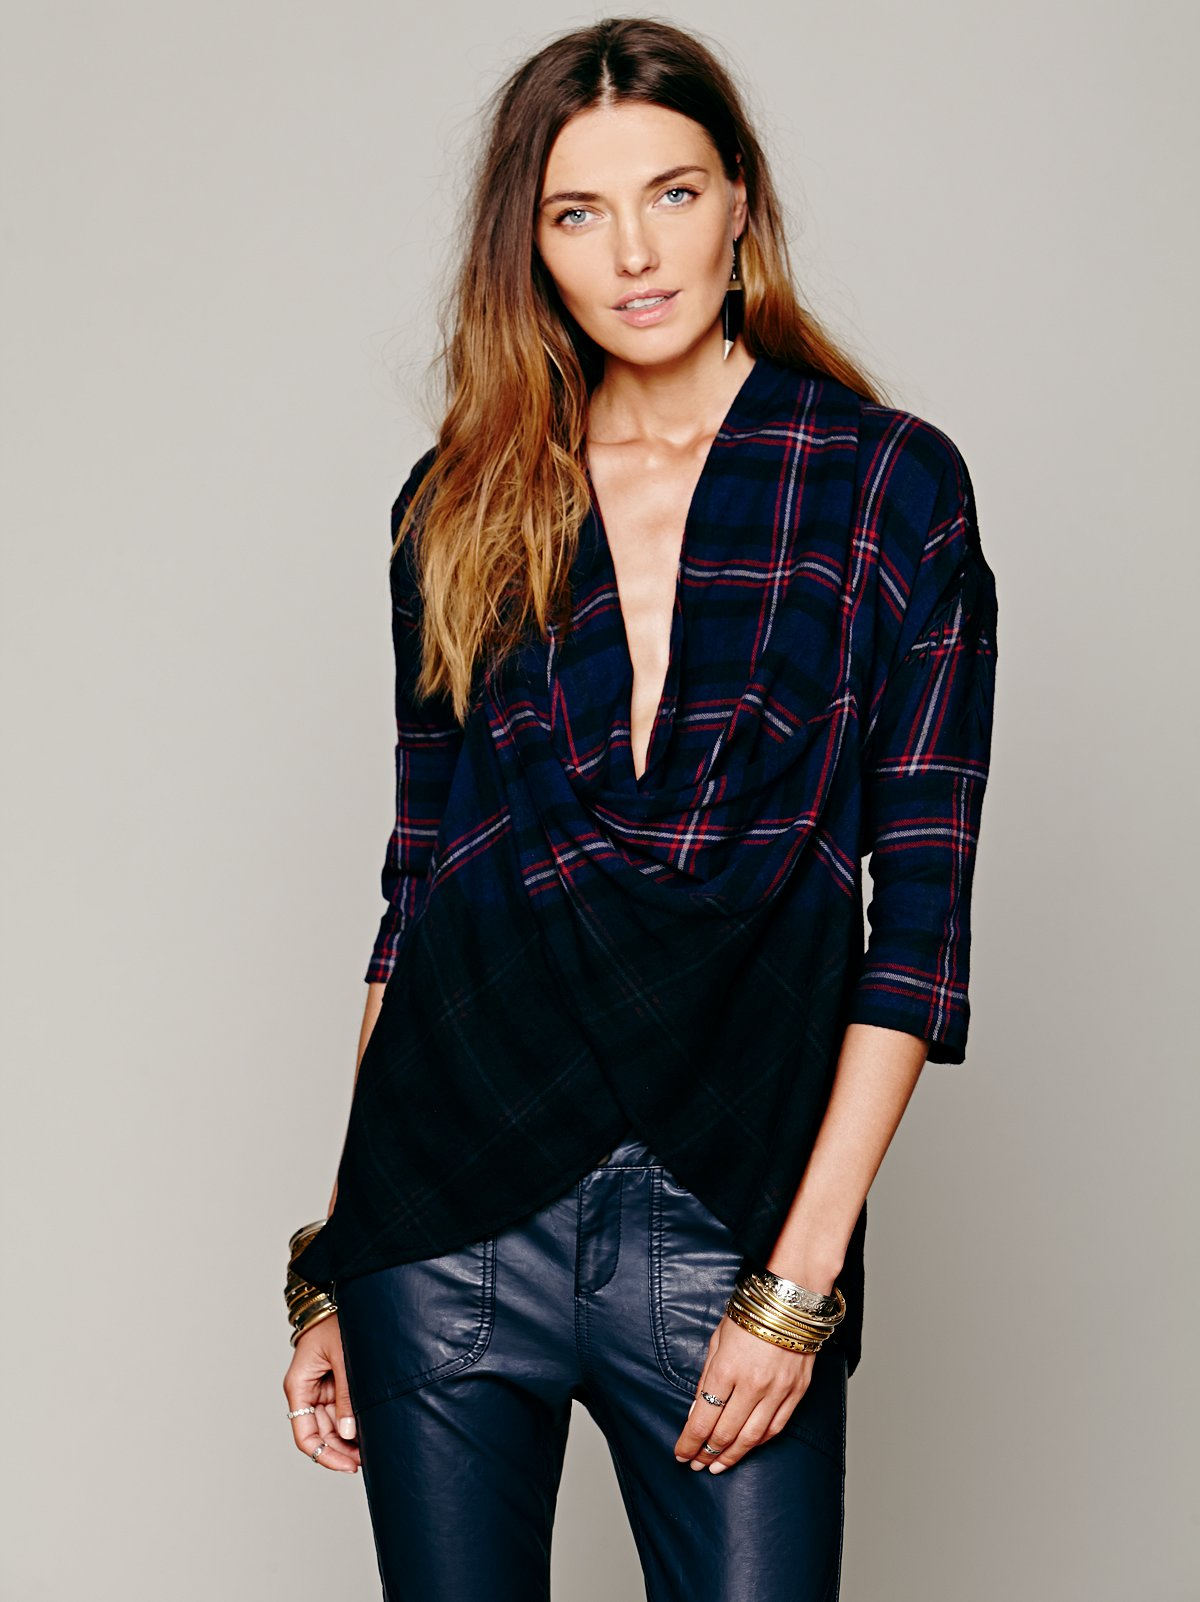 FP New Romantics Plaid Wrap Top